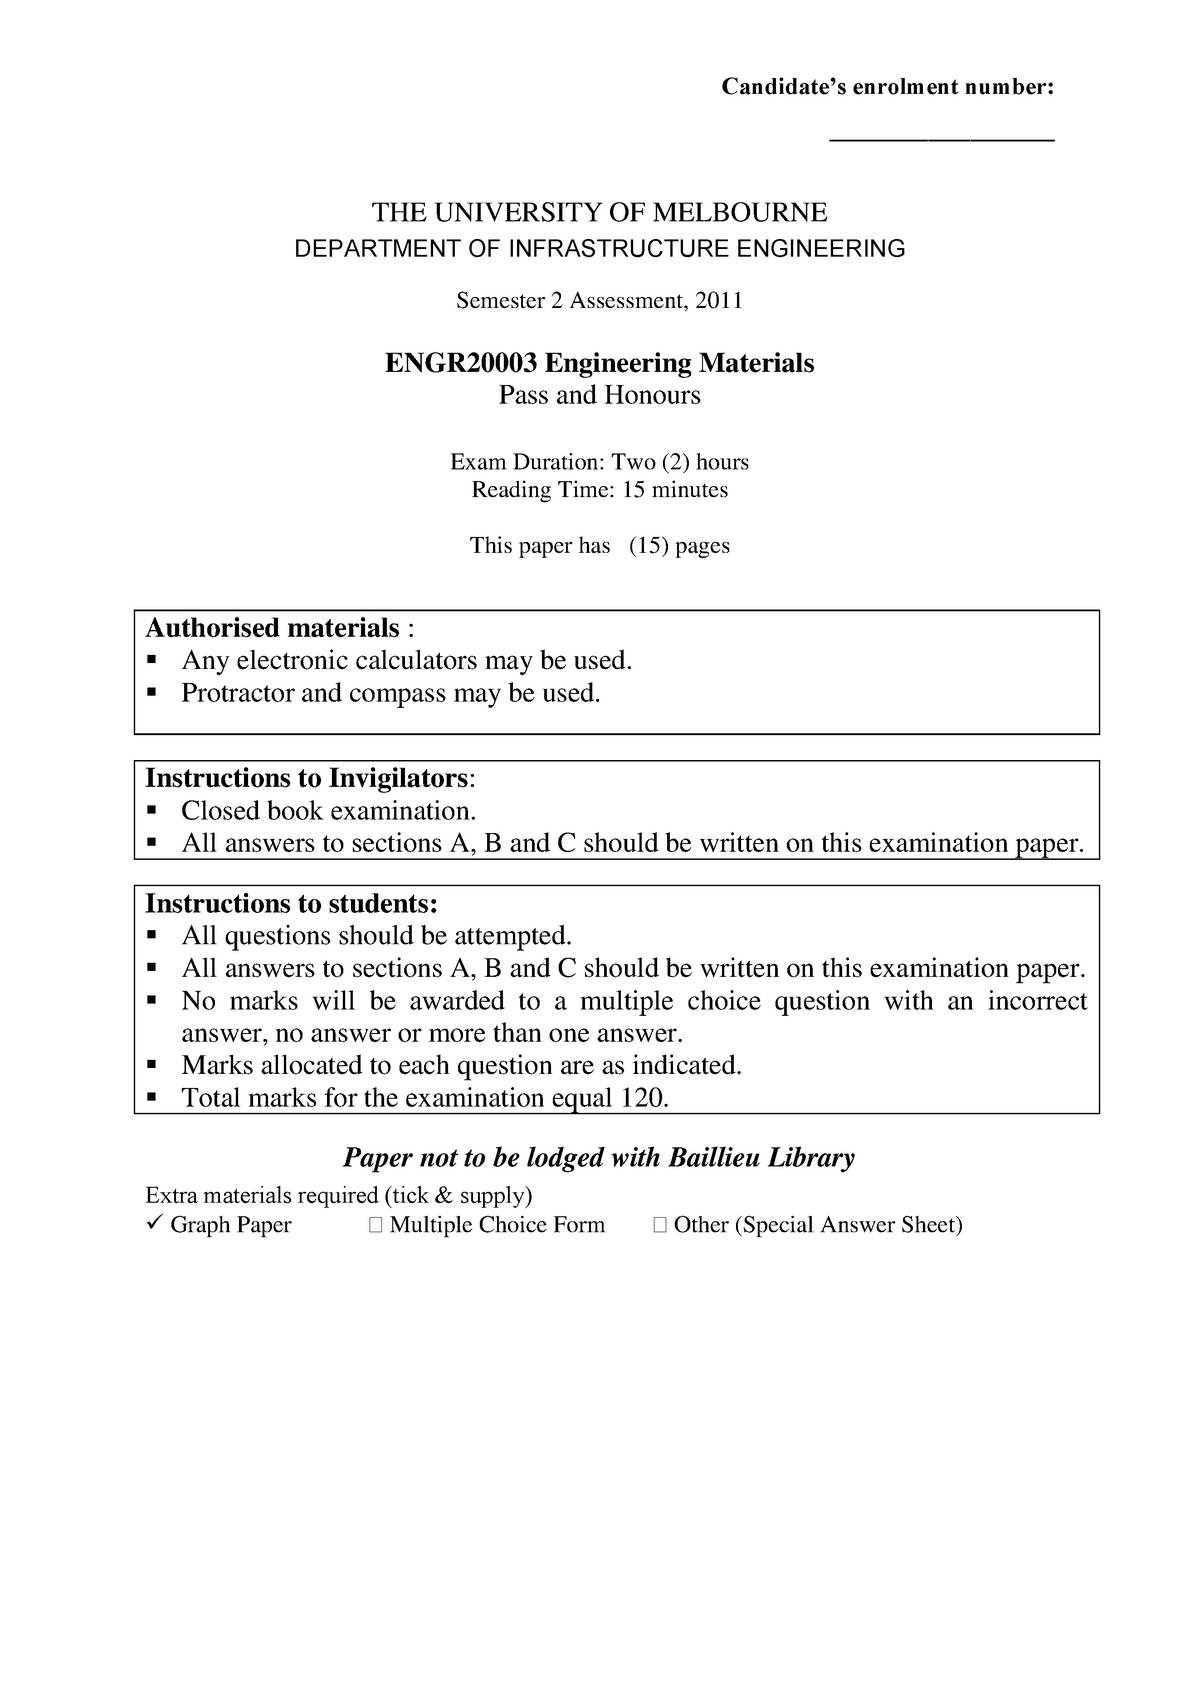 Exam 2011, questions and answers - ENGR20003 - Unimelb - StuDocu